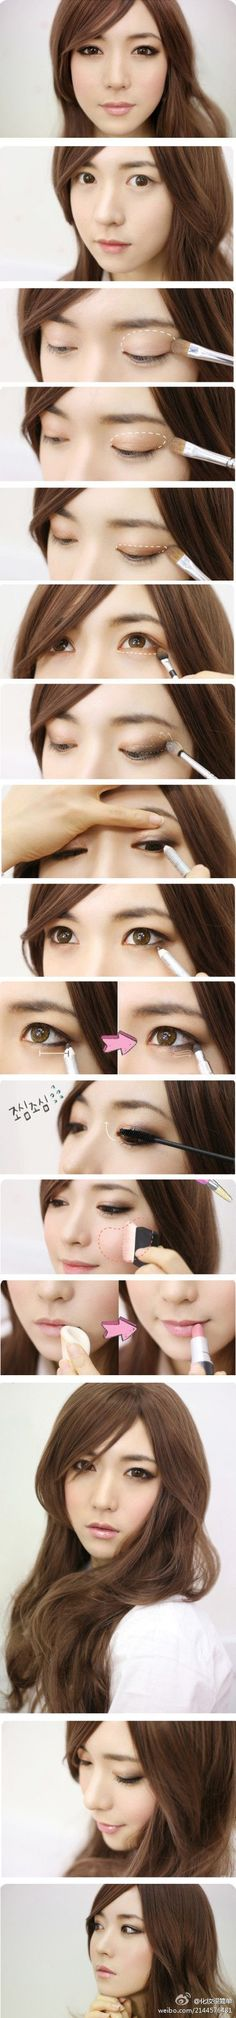 Best Asian makeup tutorials on http://pinmakeuptips.com/top-asian-makeup-tips-at-one-place/